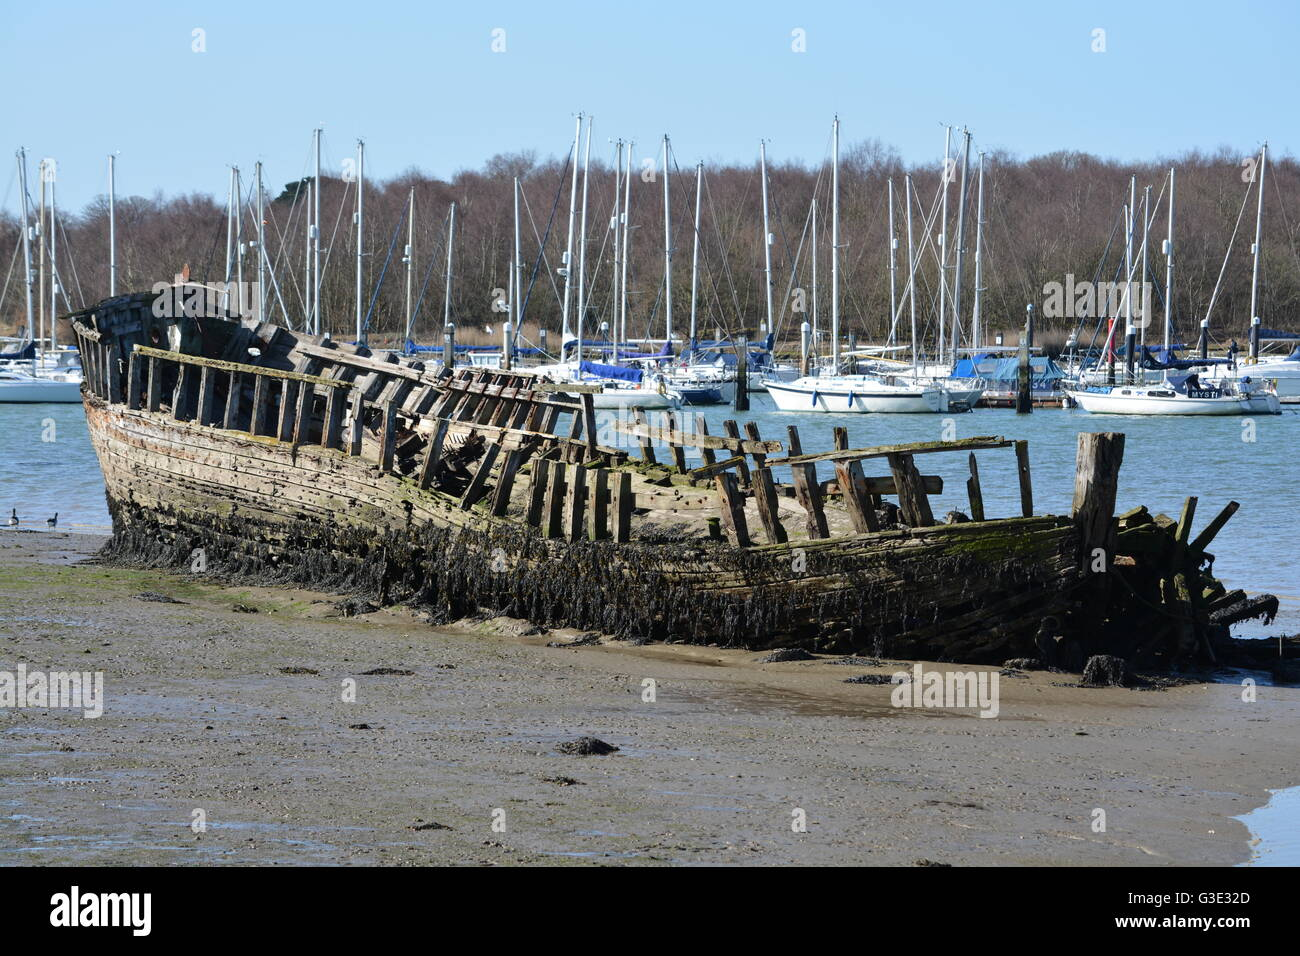 Wreck on the mudflat of the River Hamble, Southampton - Stock Image